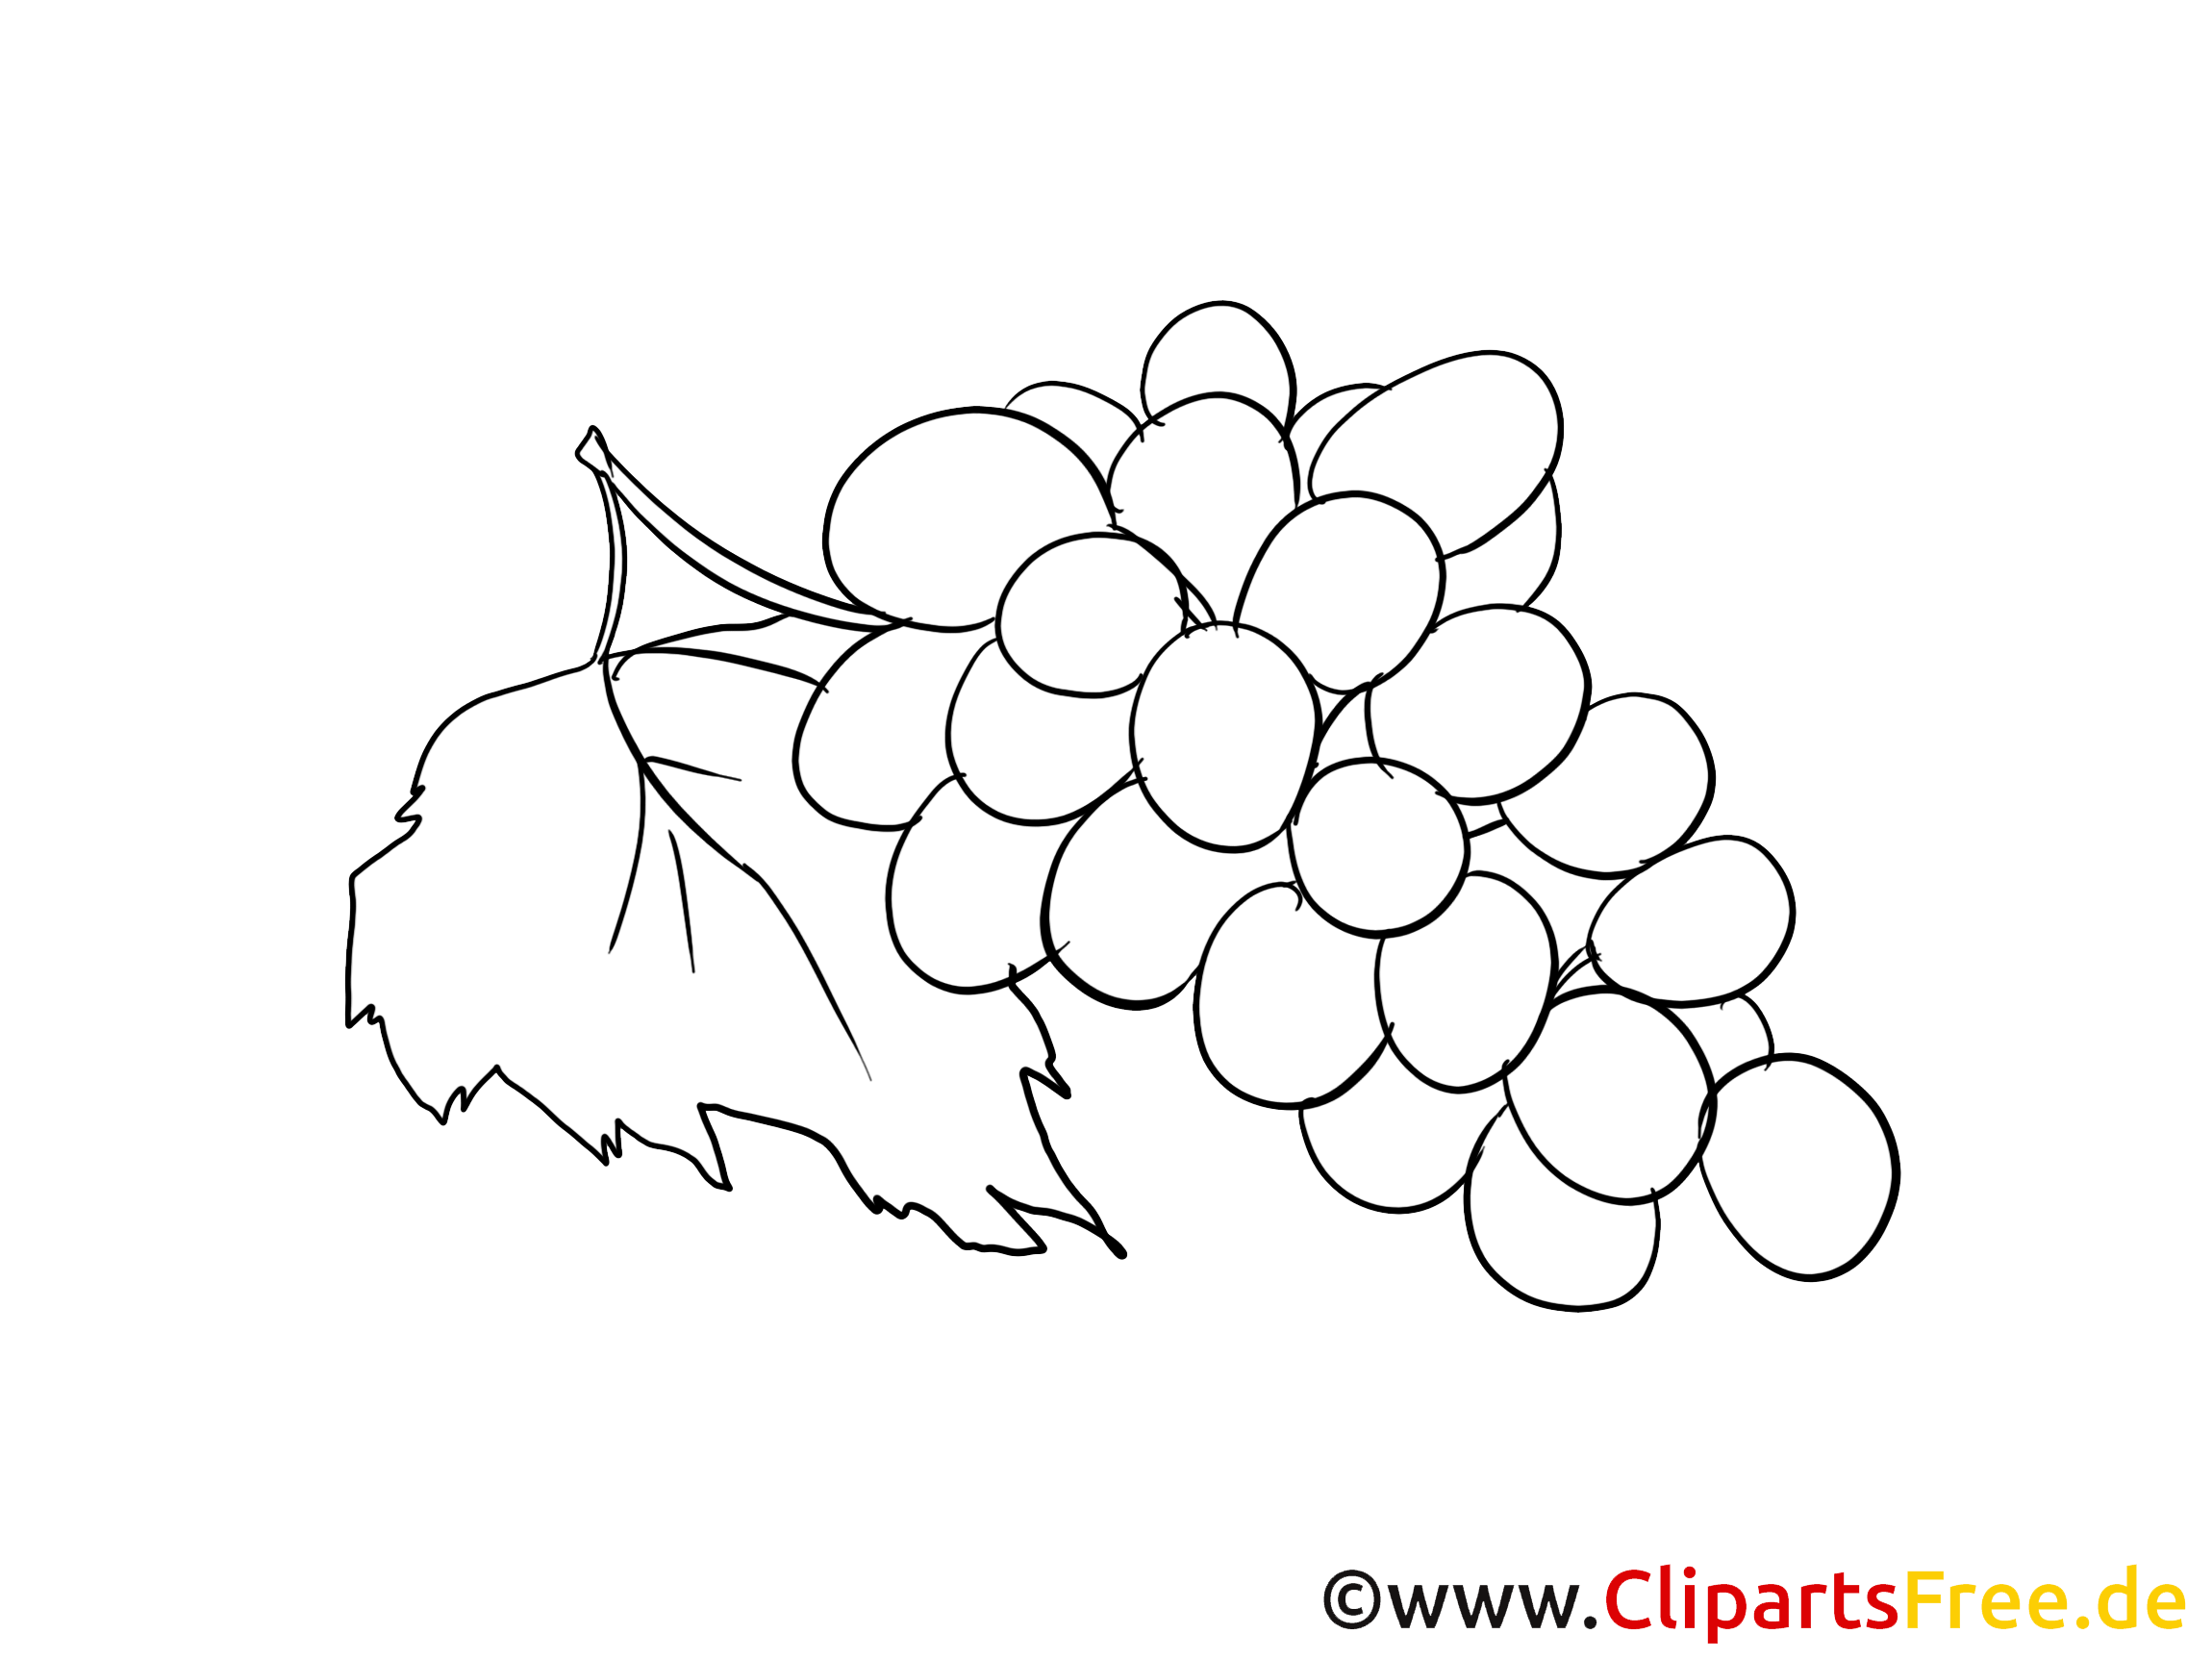 Raisin clipart à colorier - Fruits images